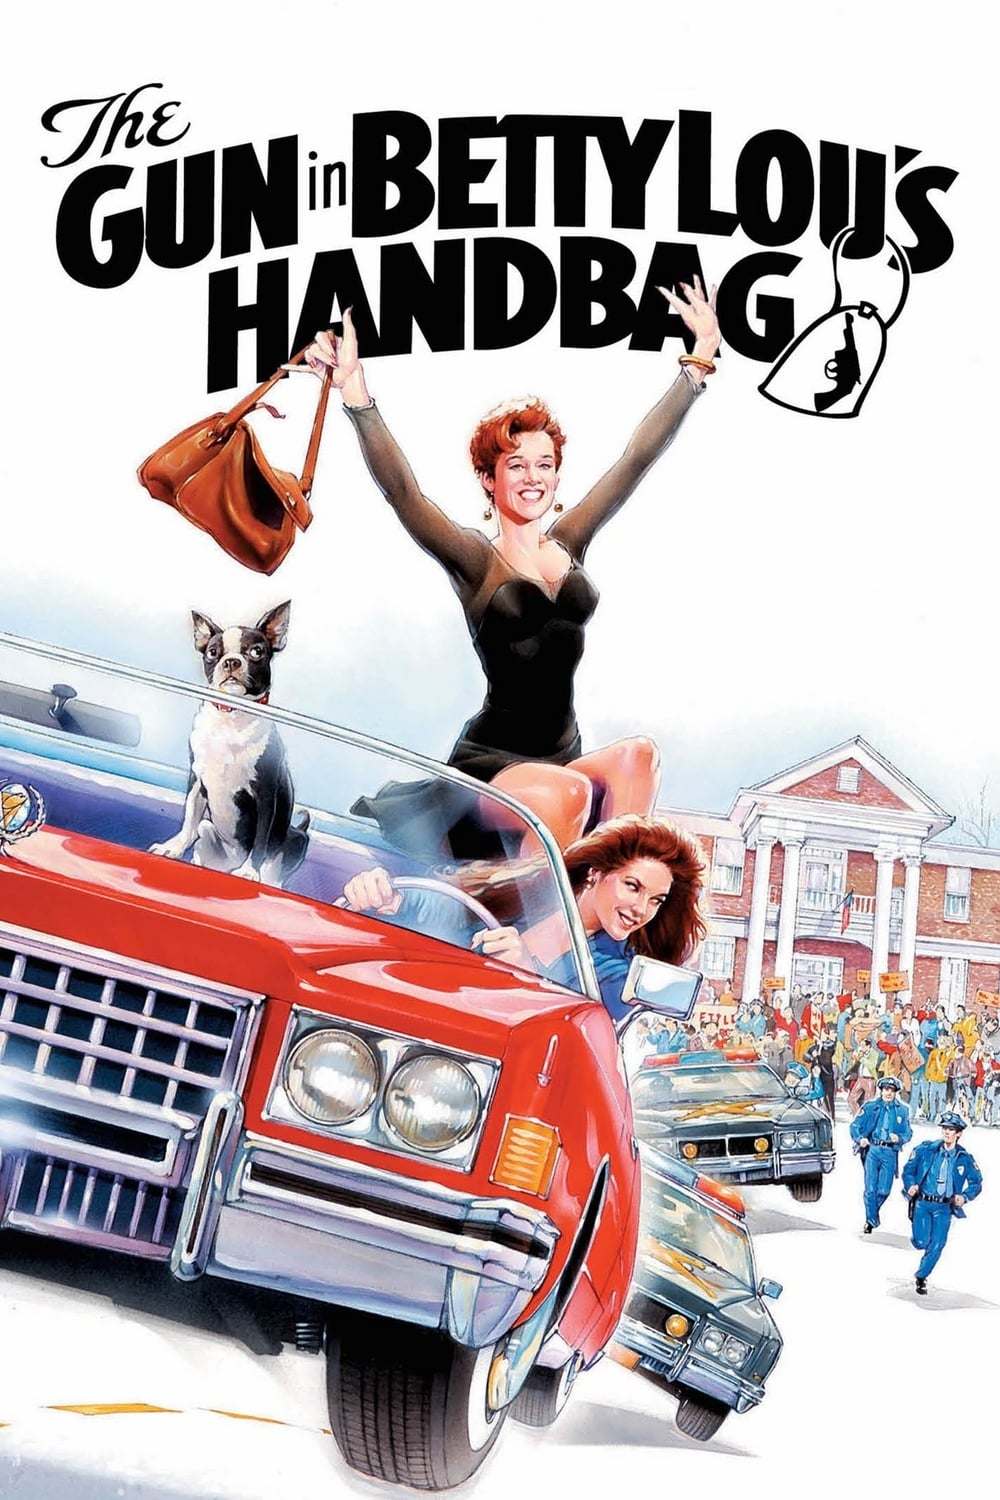 The Gun in Betty Lou's Handbag (1992)